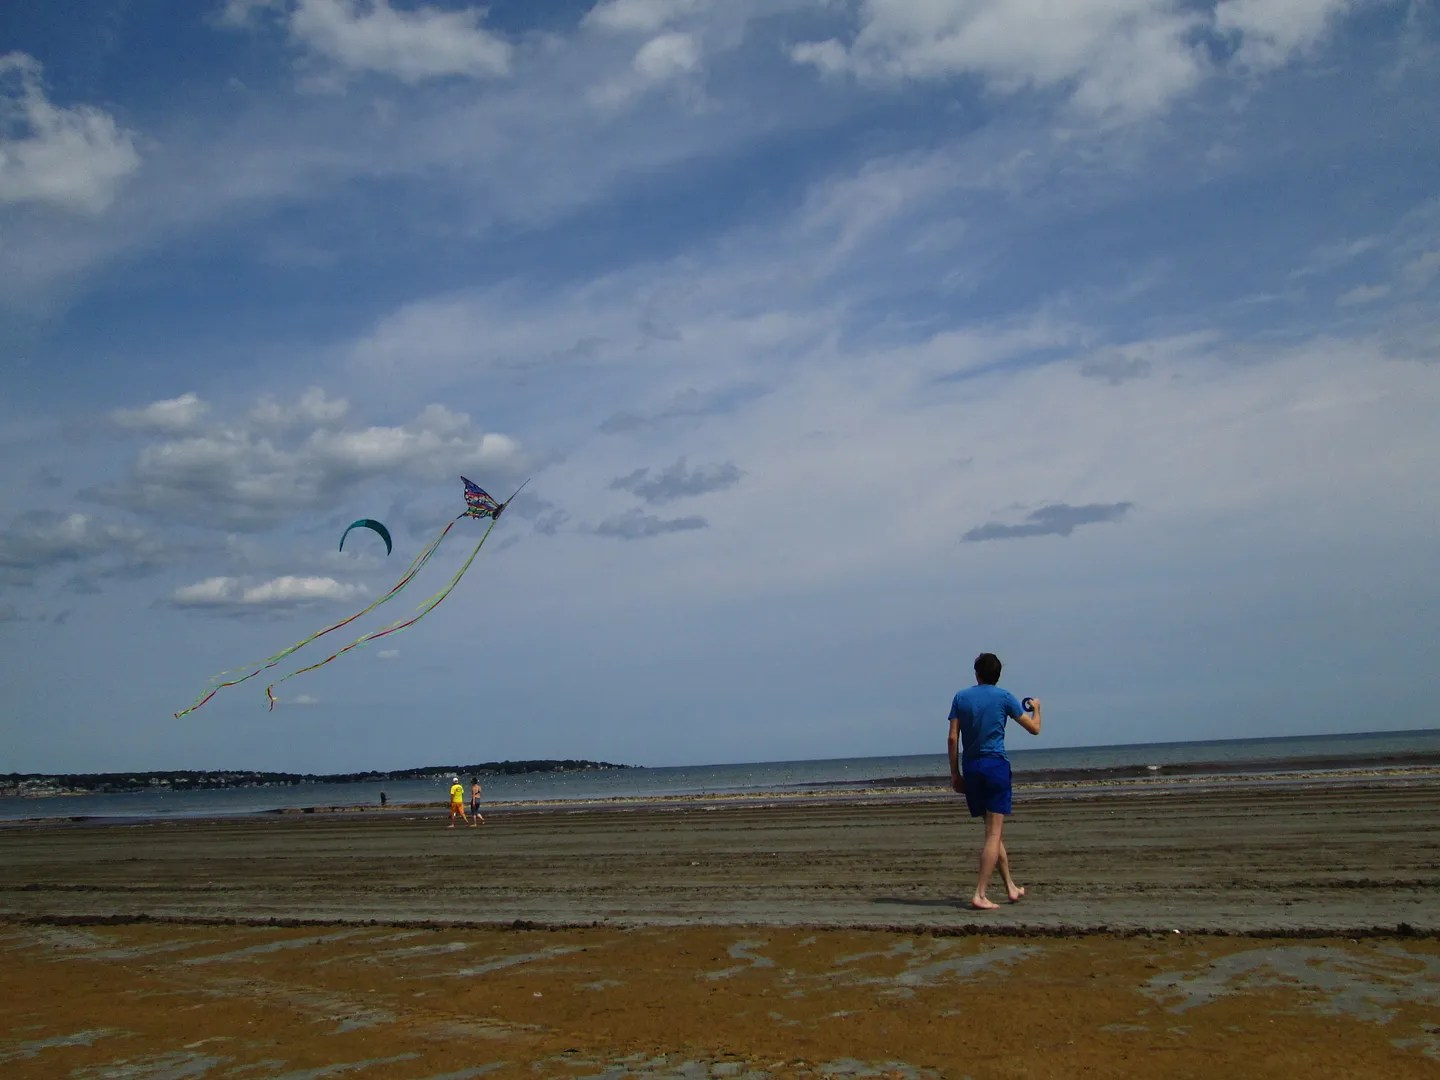 friend flying a kite on the beach